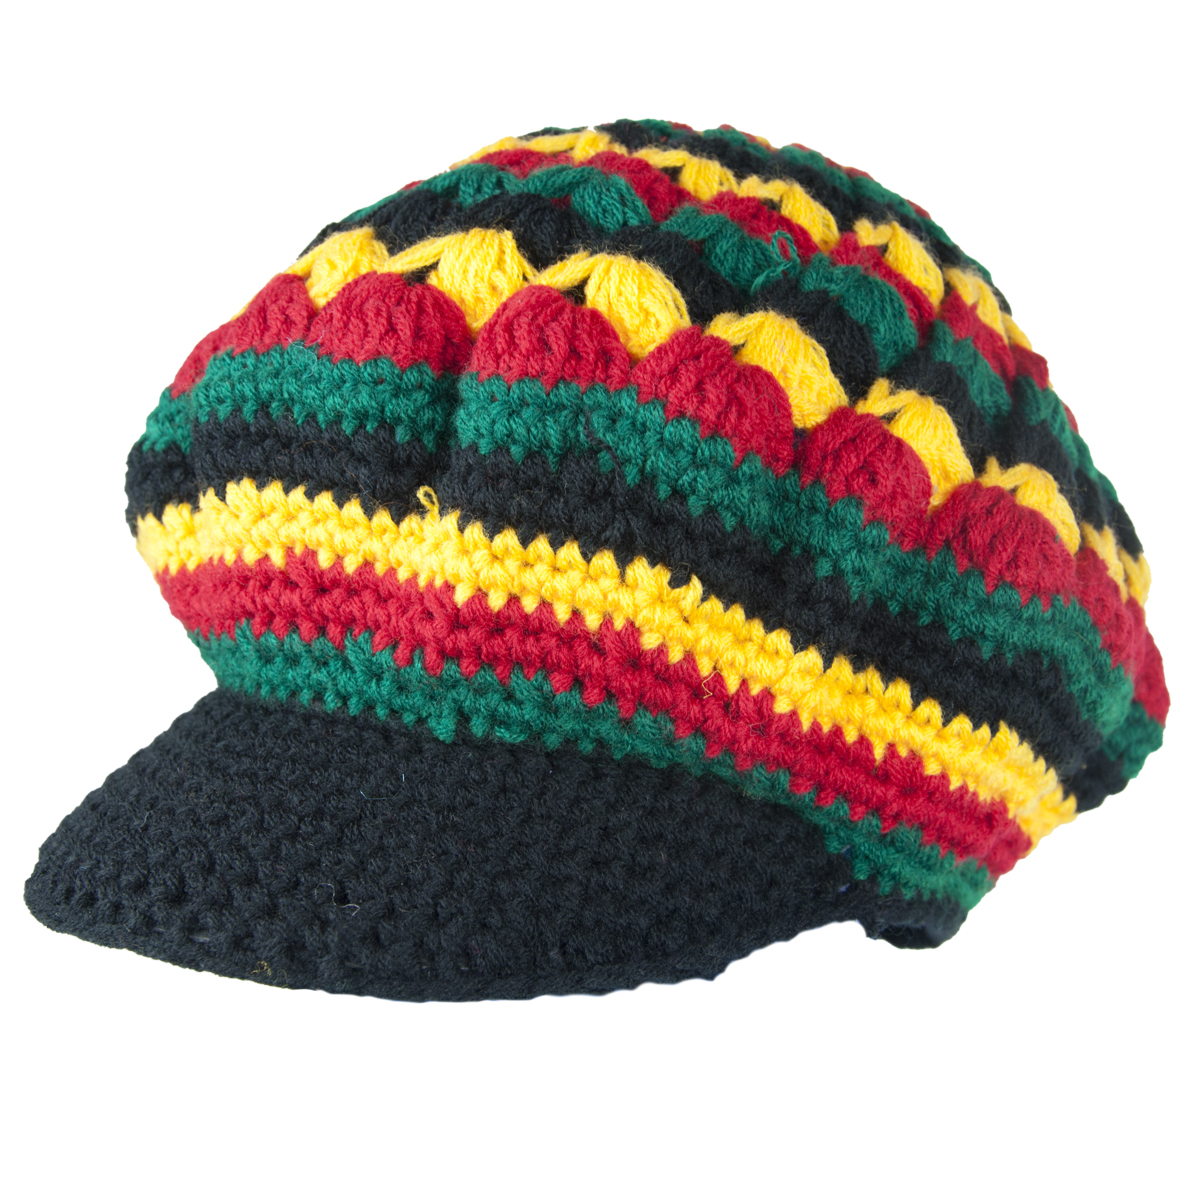 Sell Home Decor Products Exodus Rasta Wool Knit Brim Hat Rastaempire Com